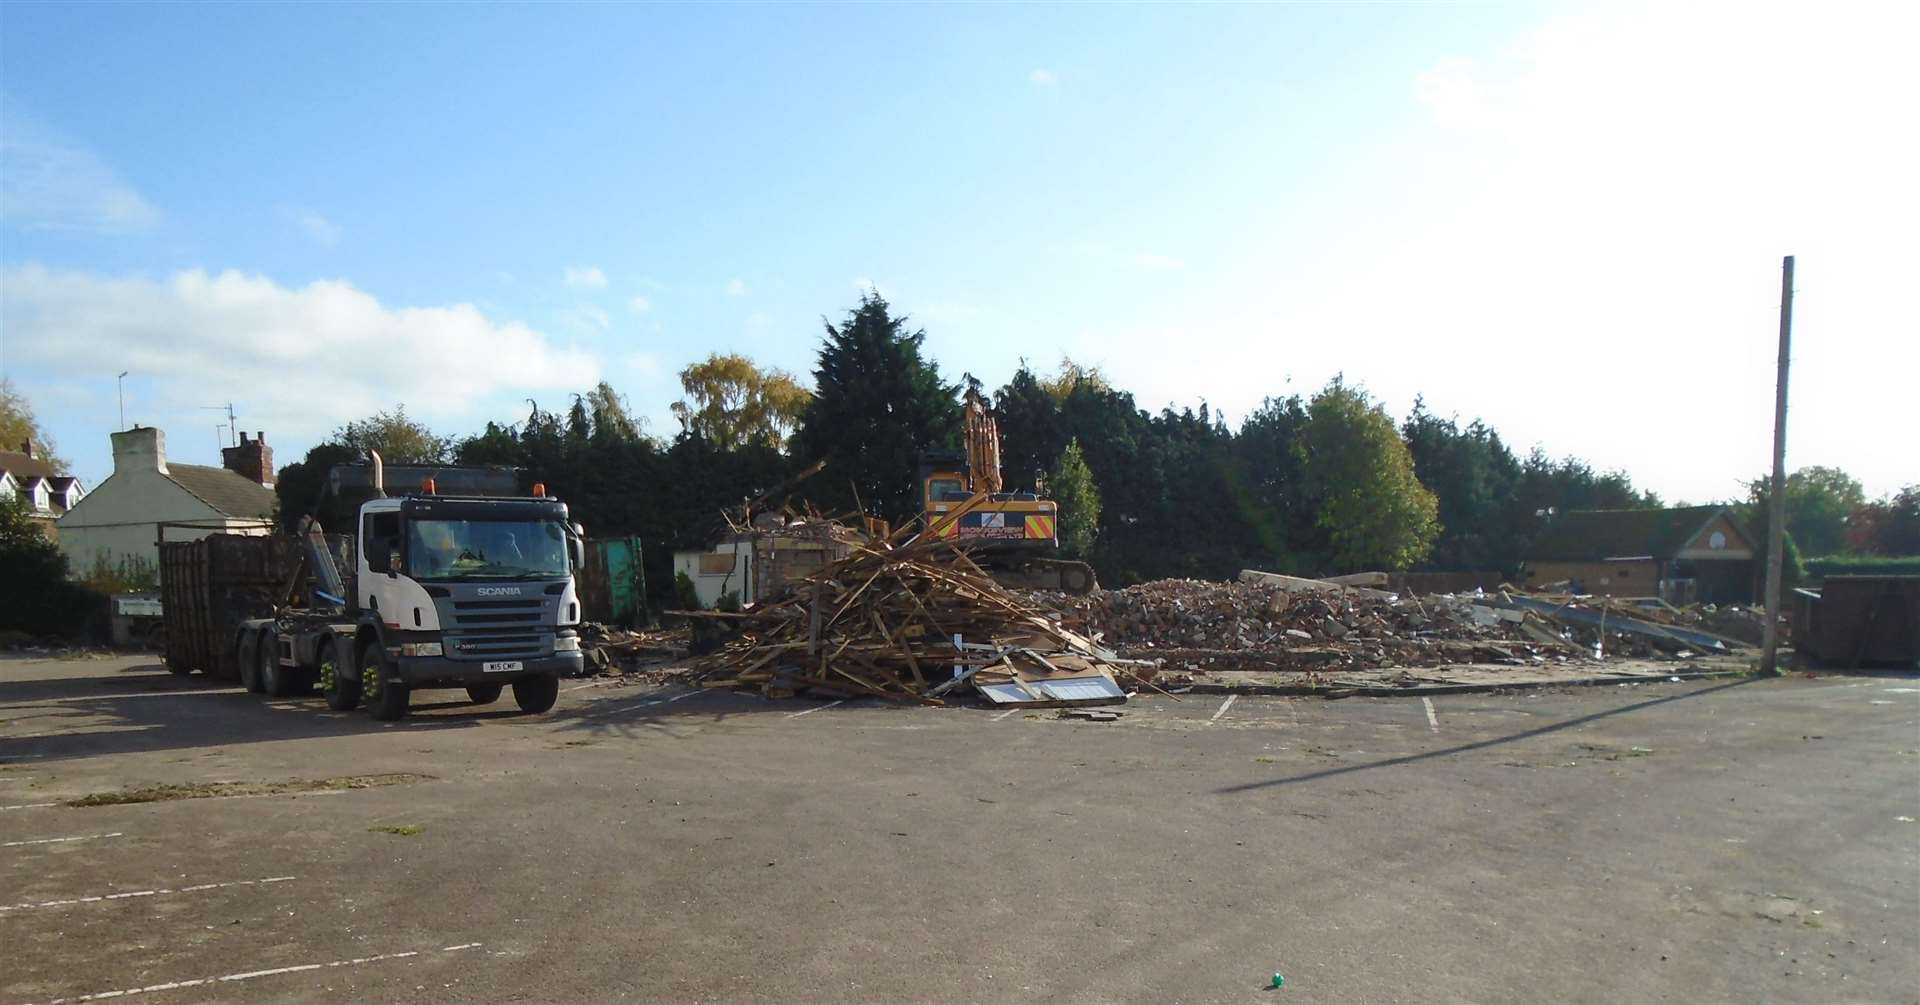 The former Birds pub has been demolished to make way for a new care home (20404755)